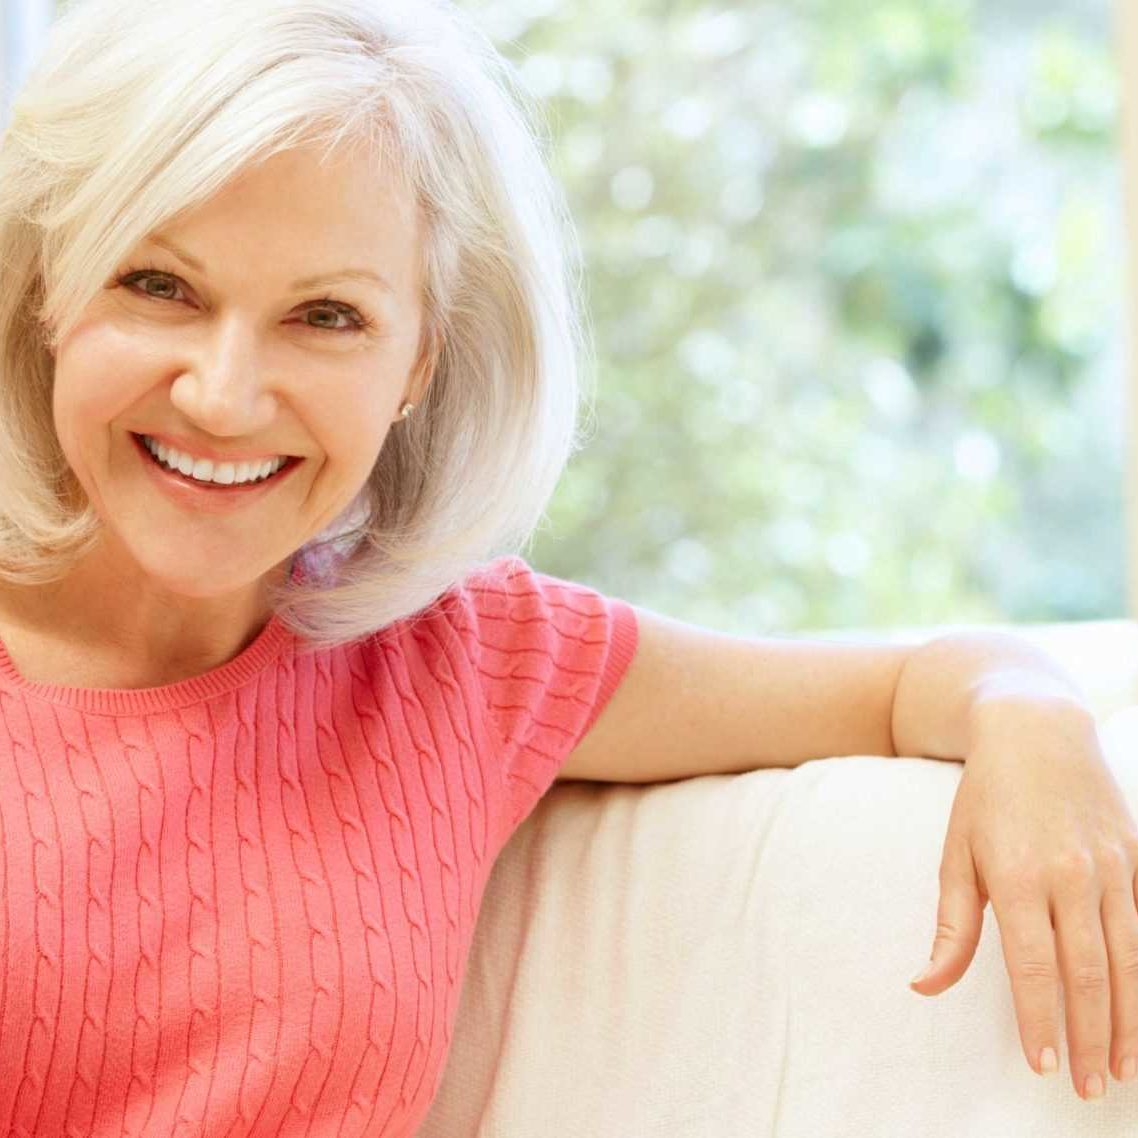 Our Hormone Replacement Therapy Programs - Bioidentical Hormones in Springfield Missouri - Woman on Couch